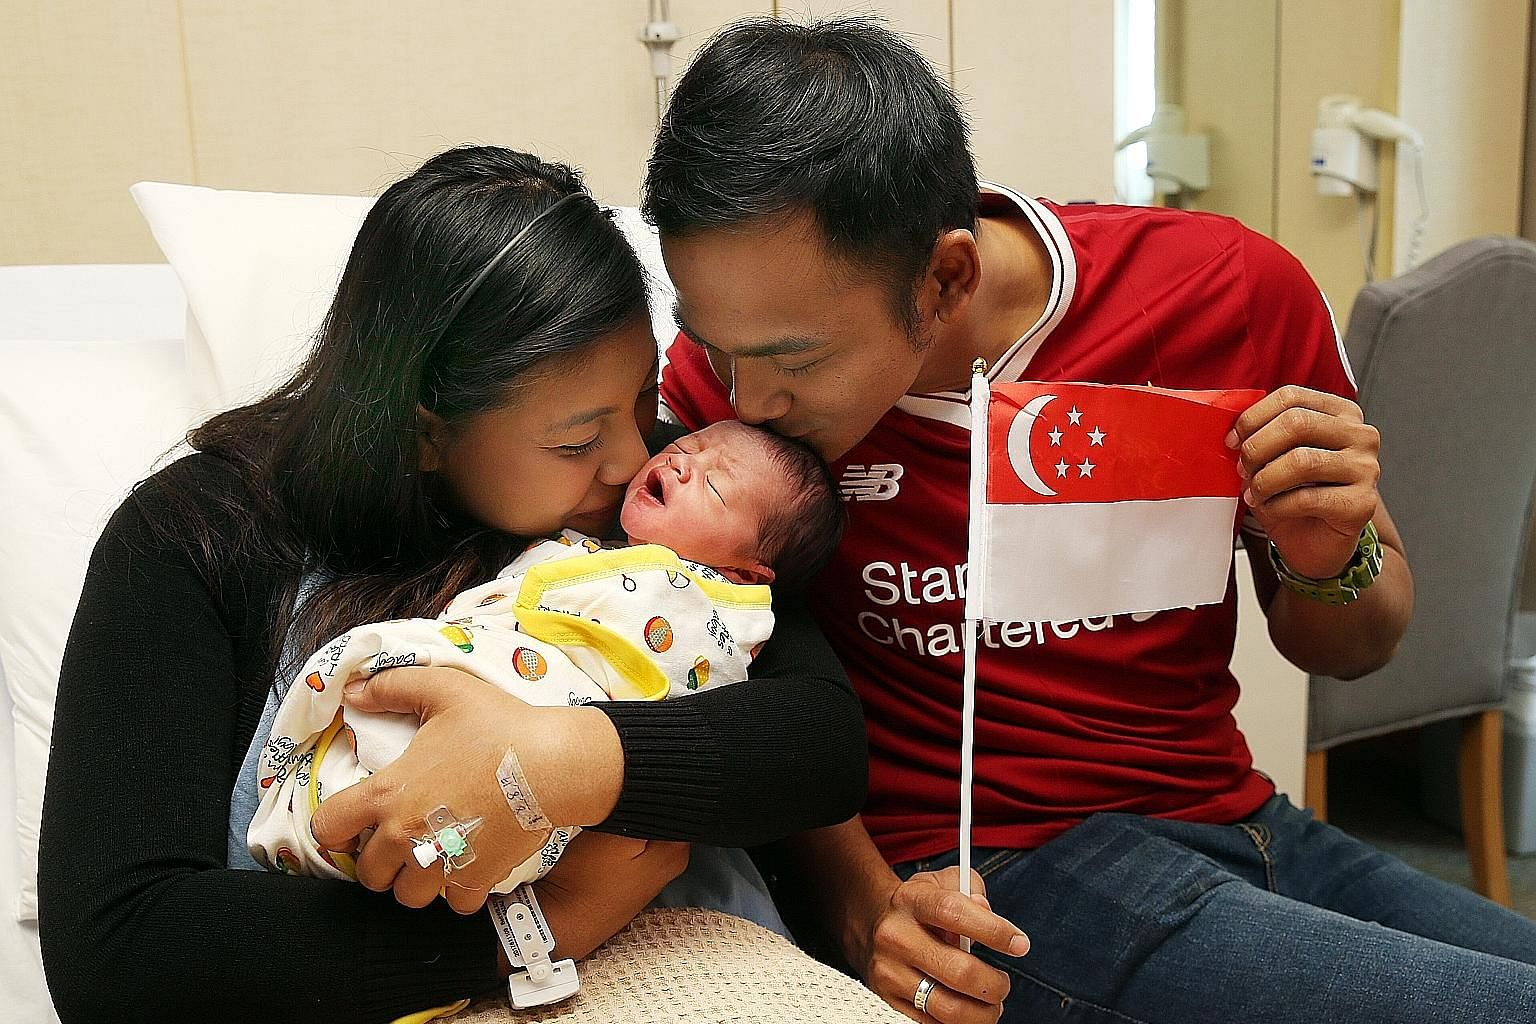 Above: Ms Soh Bei En with her newborn son Matheus Tan Pin Xu at Mount Alvernia Hospital yesterday. The baby boy is the first child of Ms Soh and her husband Tan Shi Chang, and was six days overdue. Left: Madam Rabitah Razali, Mr Eddy Kurniawan and th